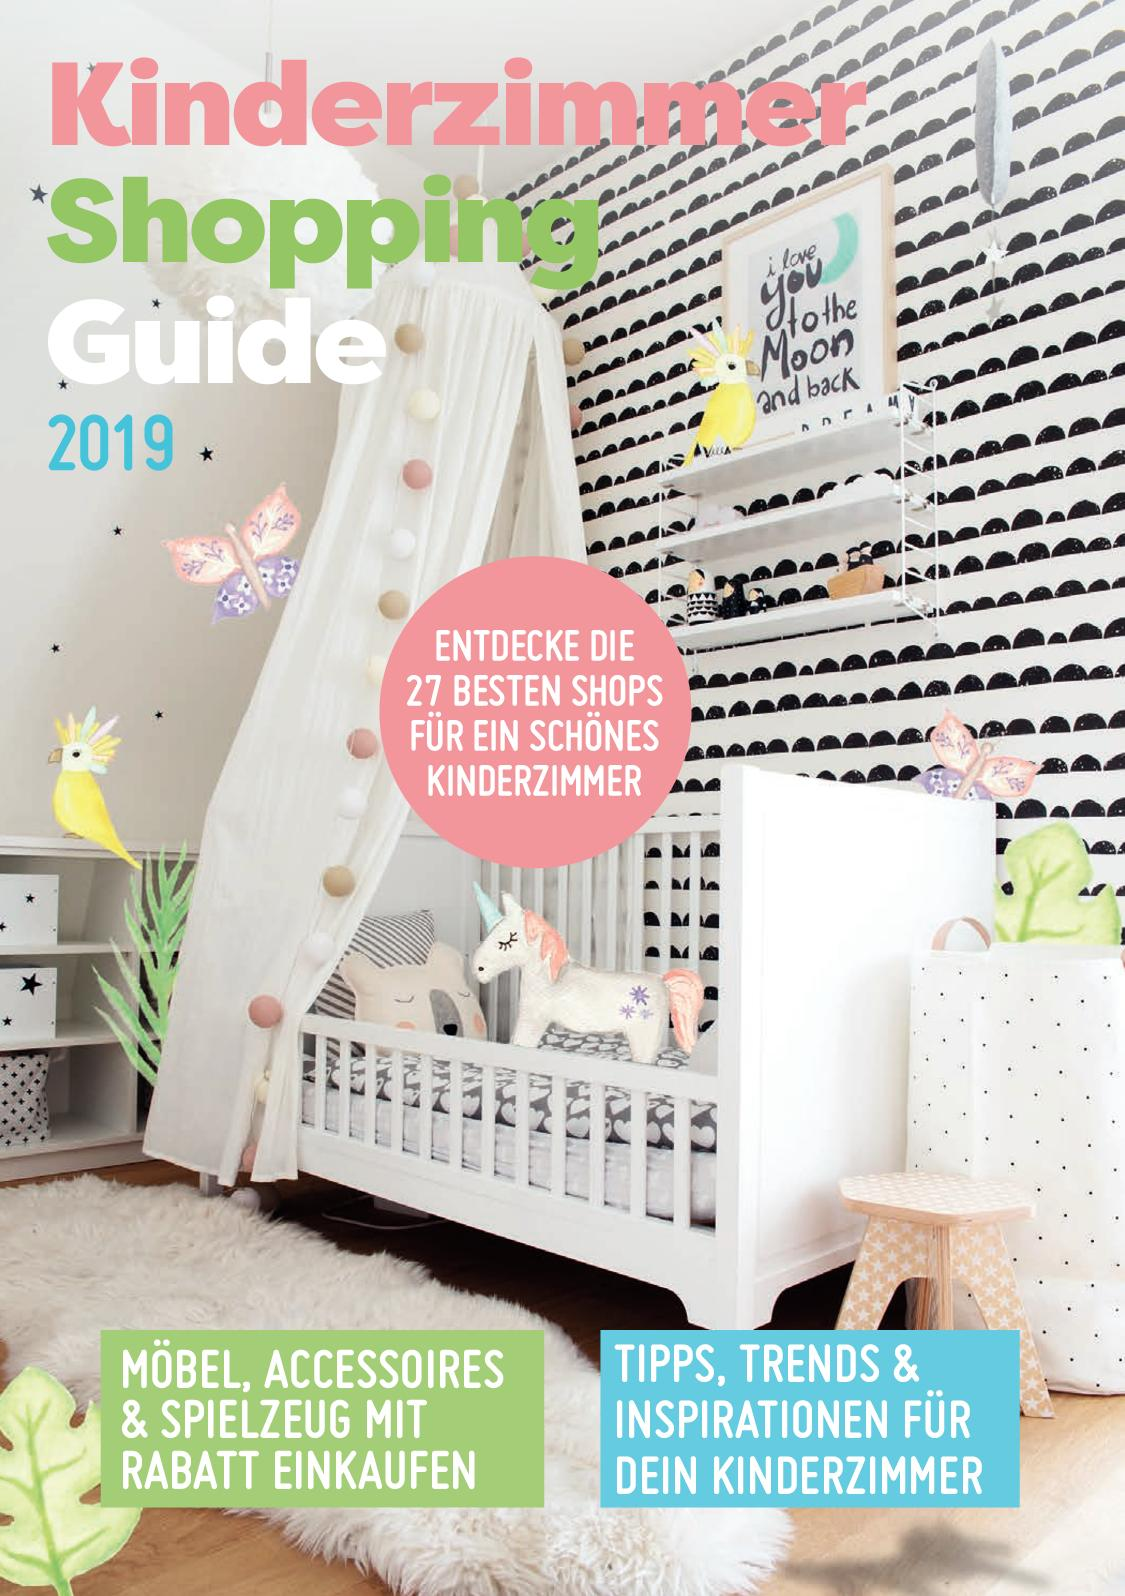 Calaméo Kinderzimmer Shopping Guide 2019 eBook